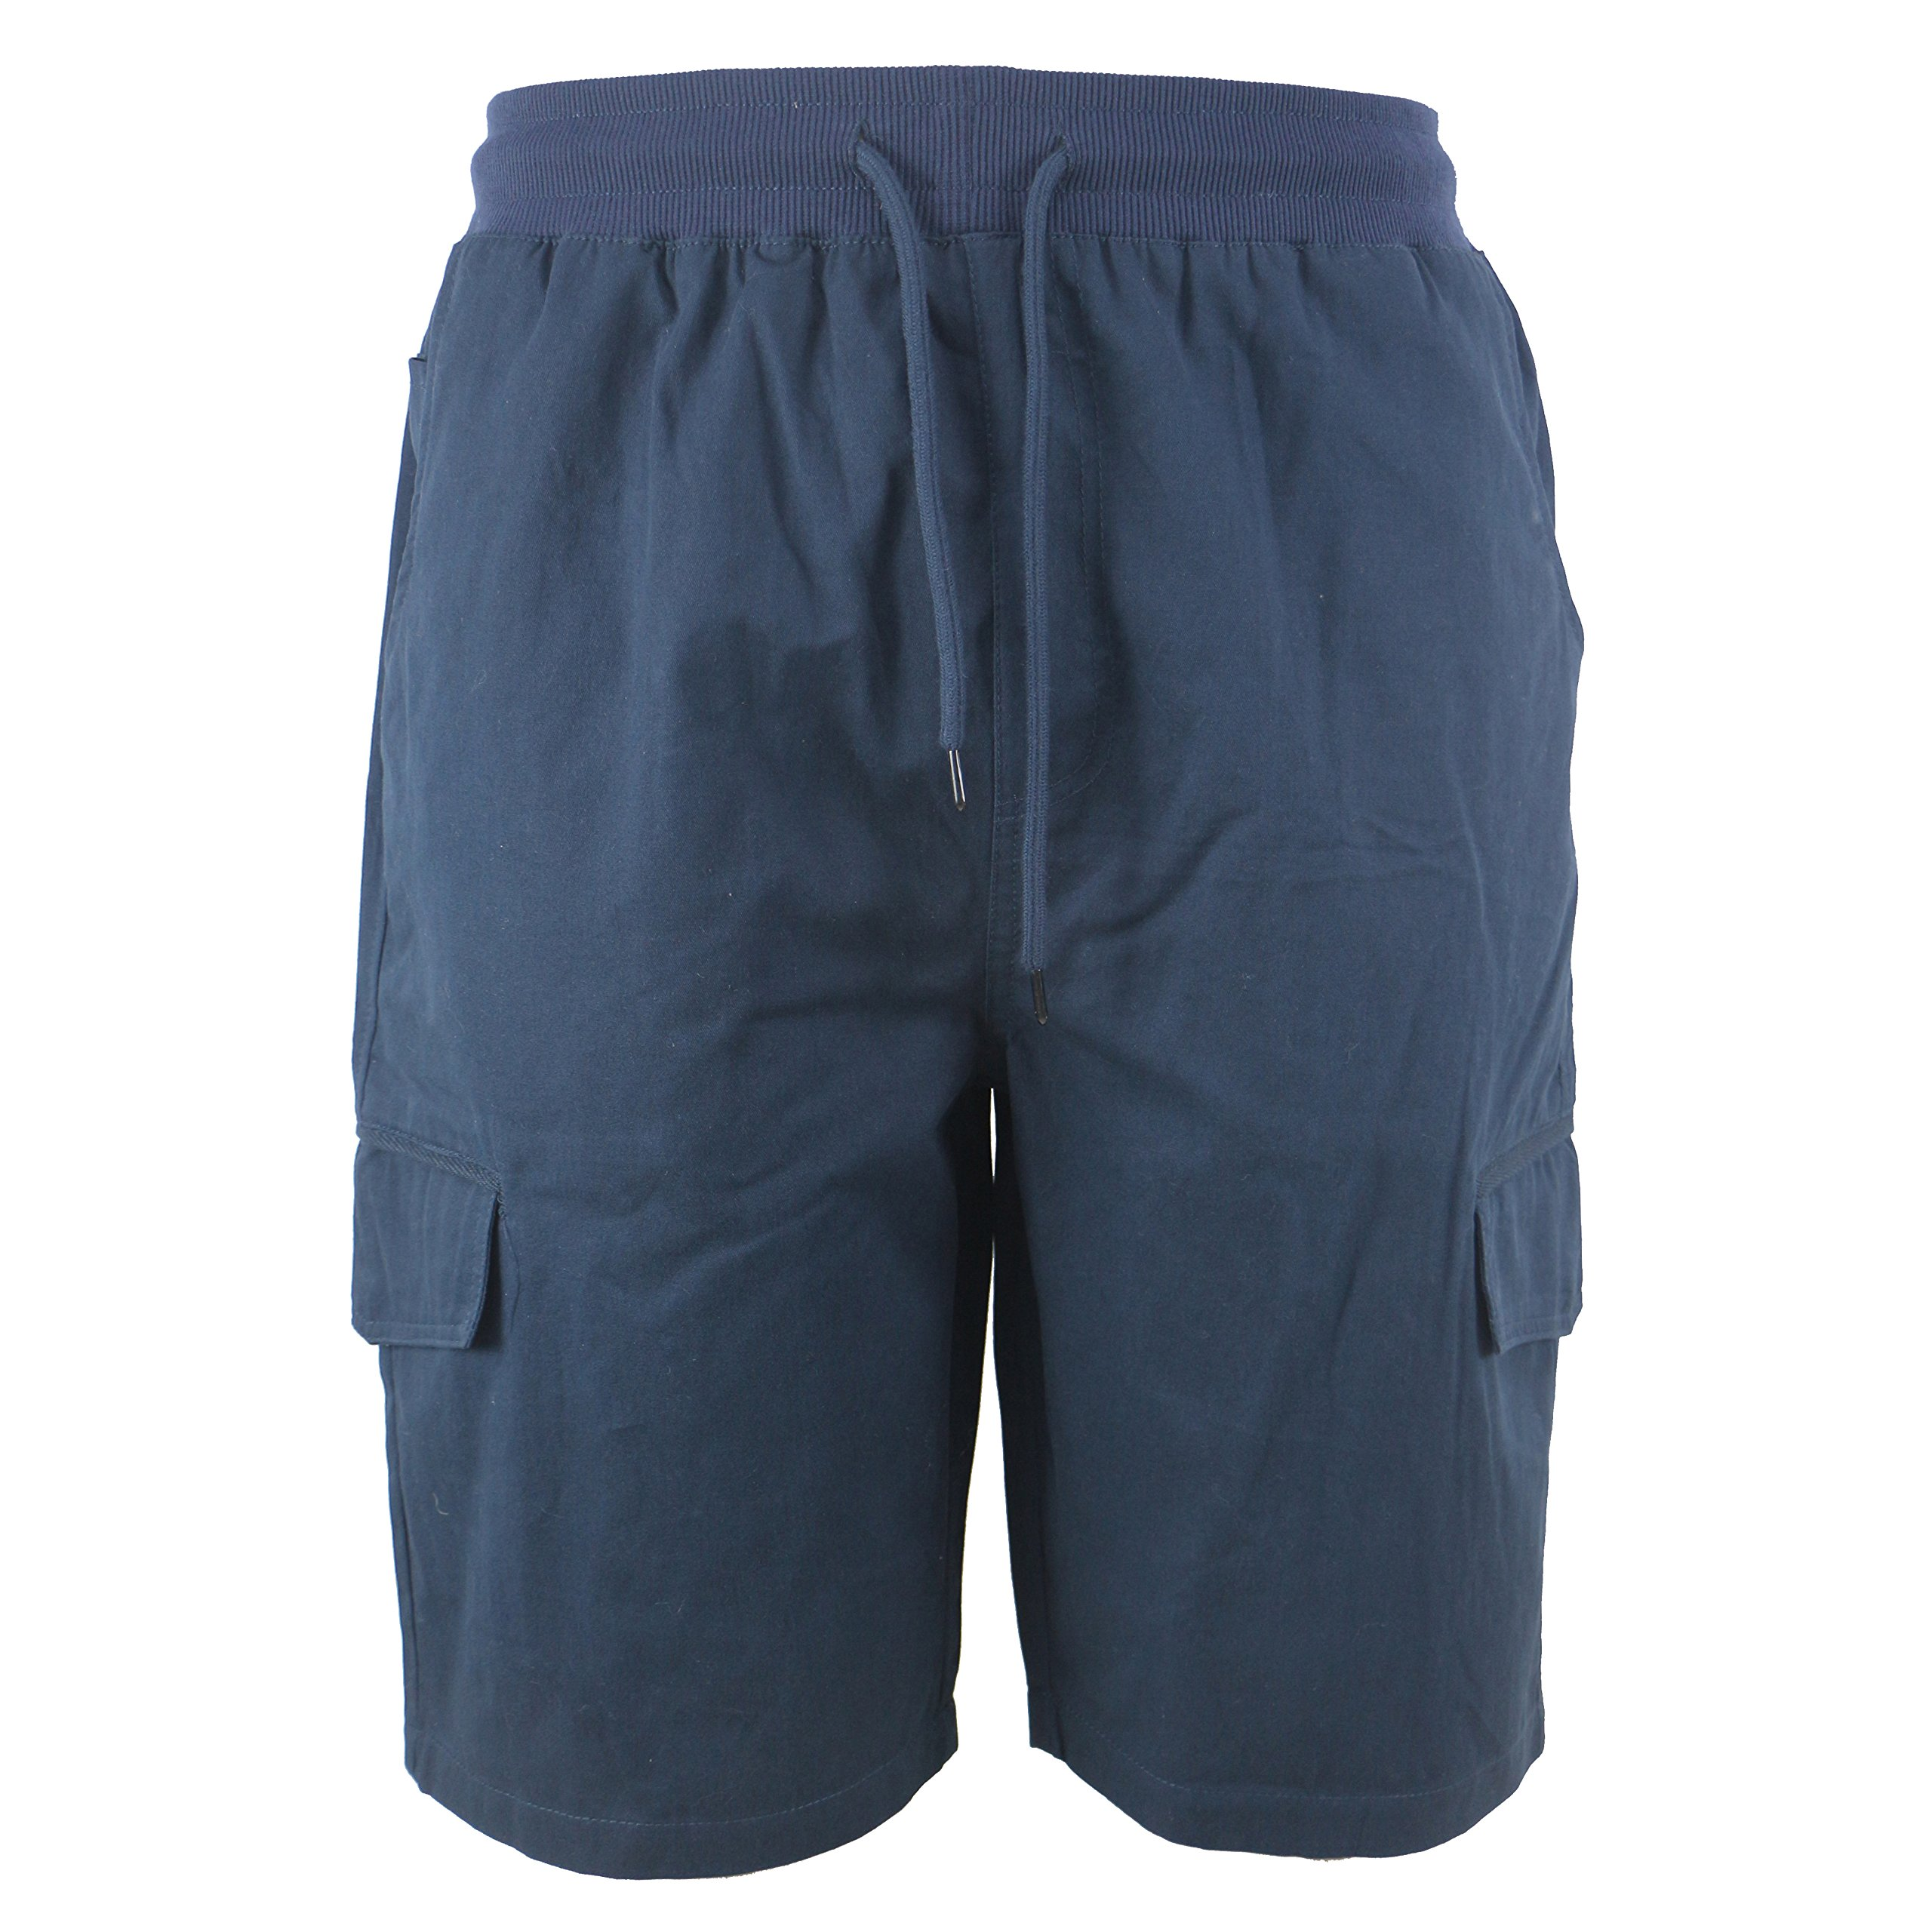 Tanbridge Men's Cotton Cargo Shorts with Pockets Loose Fit Outdoor Wear Twill Elastic Waist Shorts Navy 36